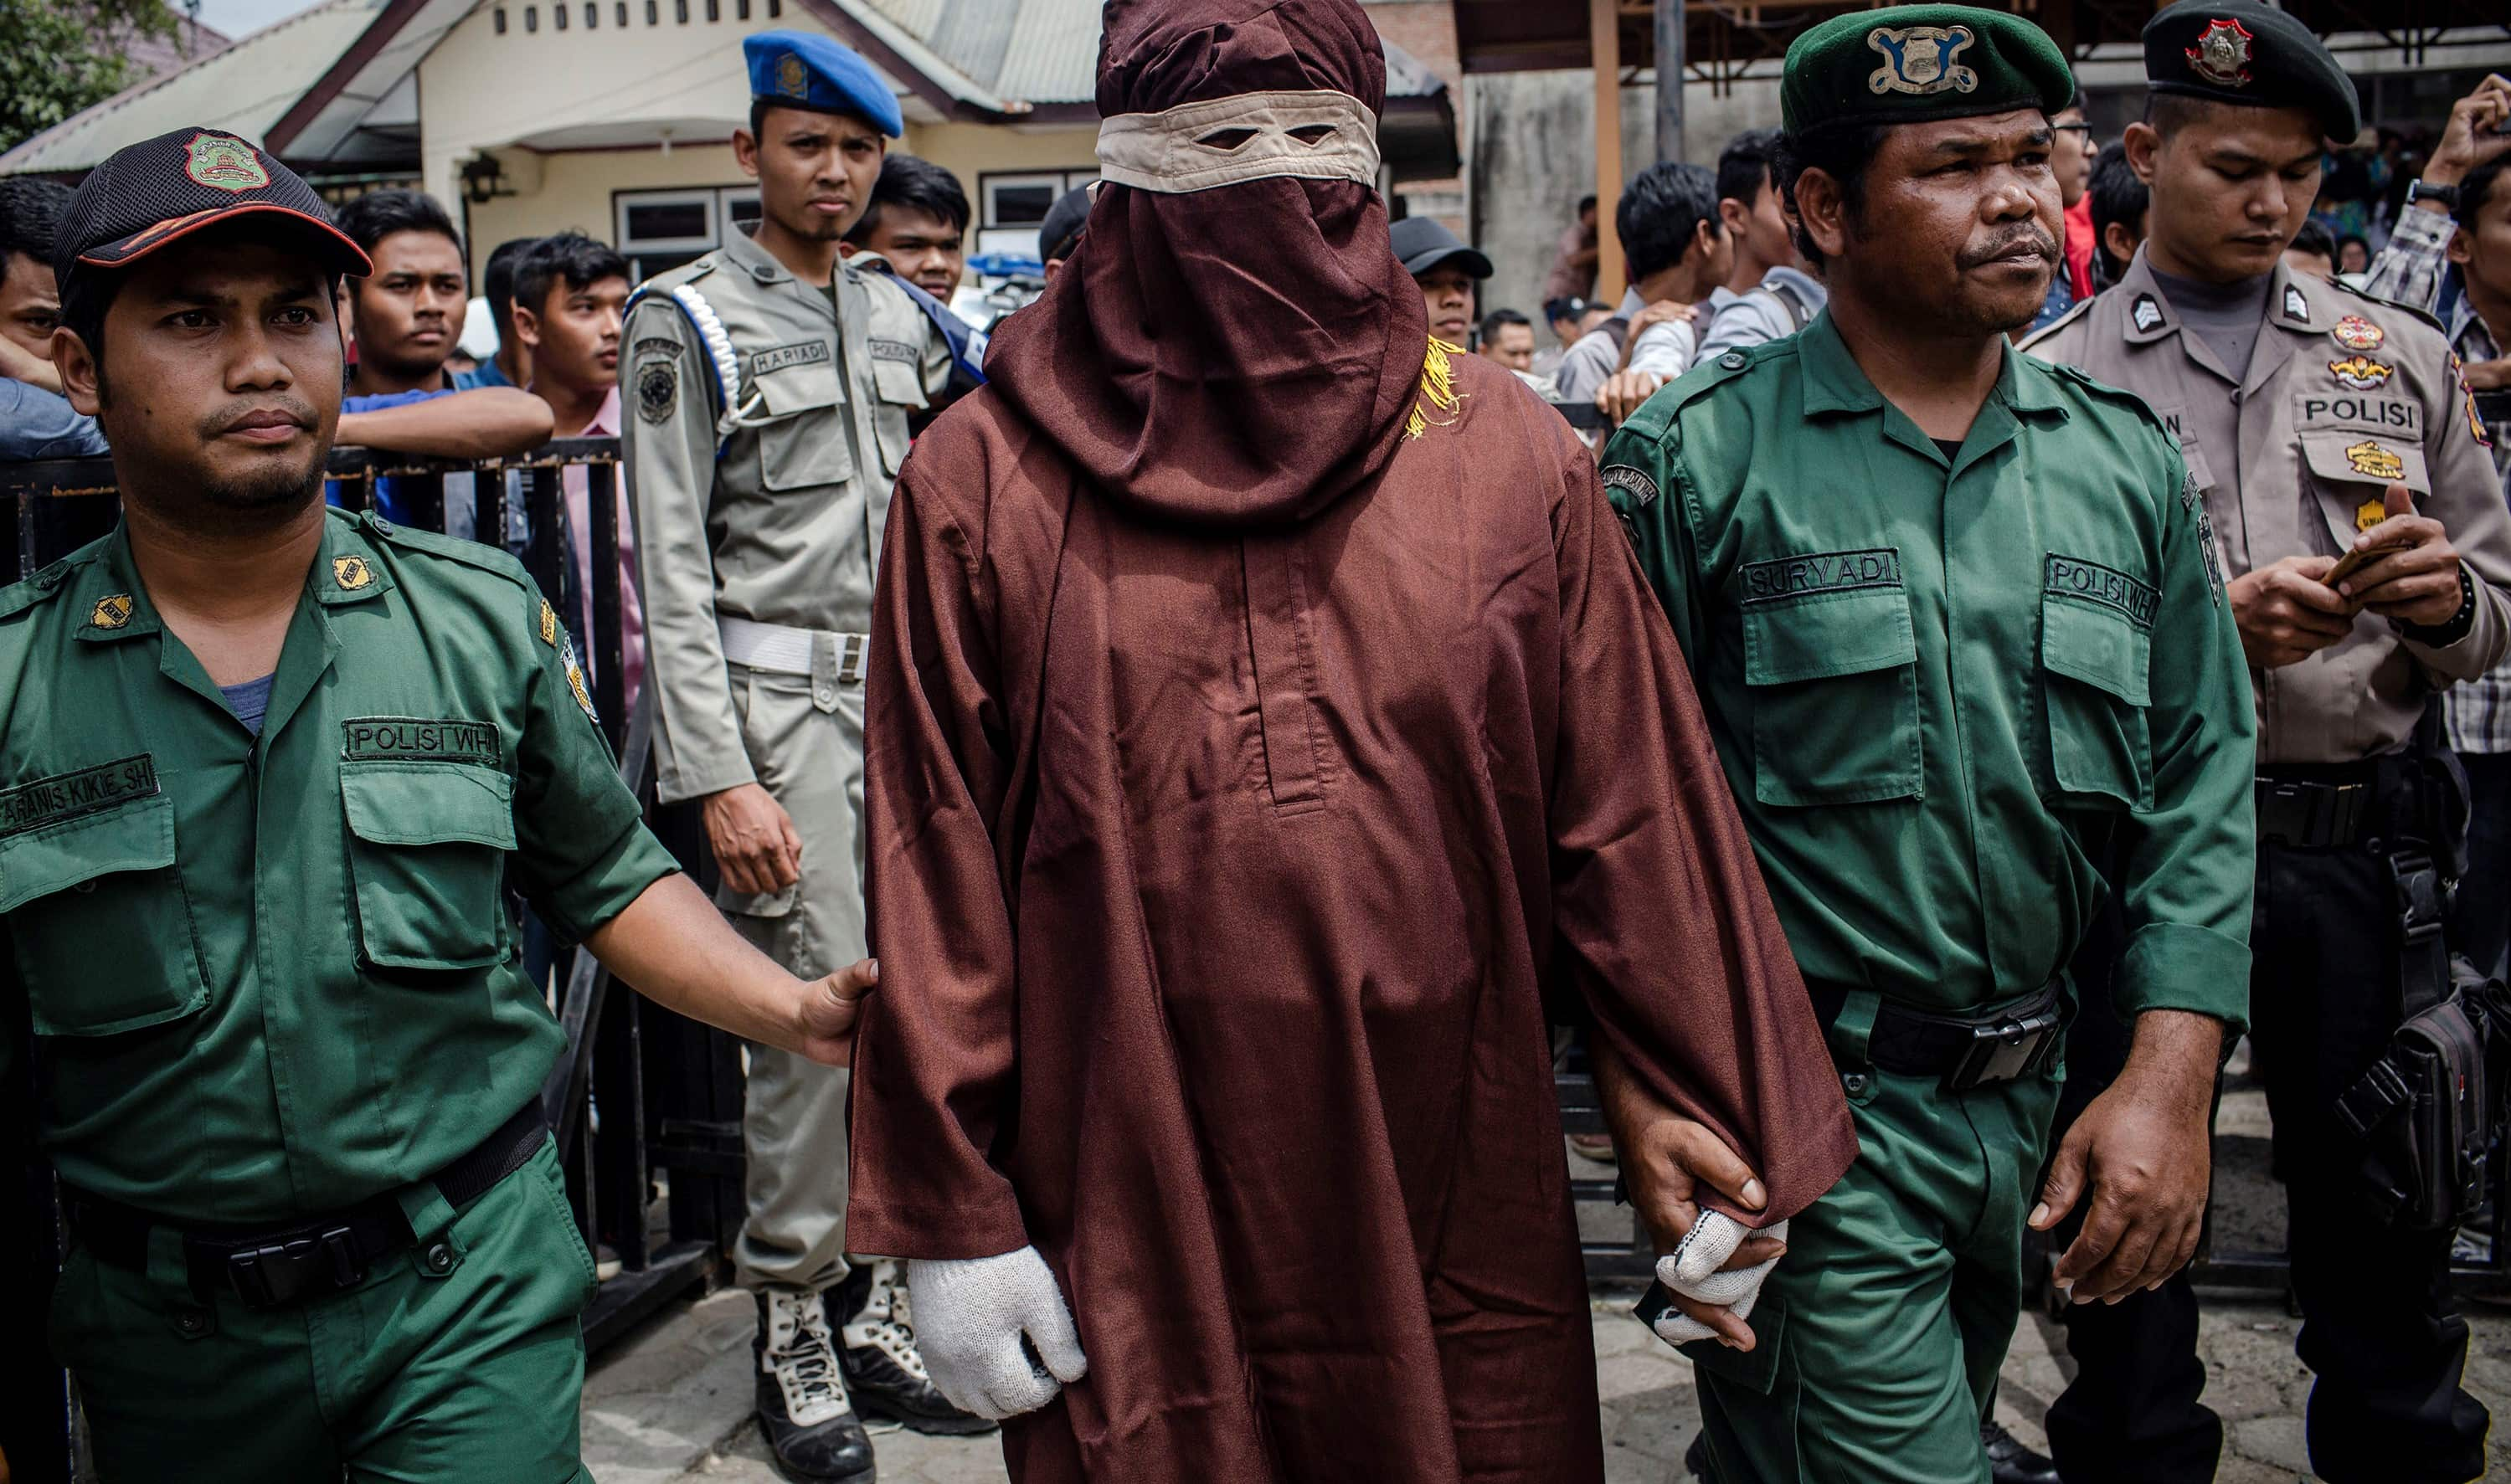 A judicial executor known as an 'algojo' stands by before a public caning in Aceh, Indonesia, March 2017 (Photo: Ulet Ifansasti/Getty Images)